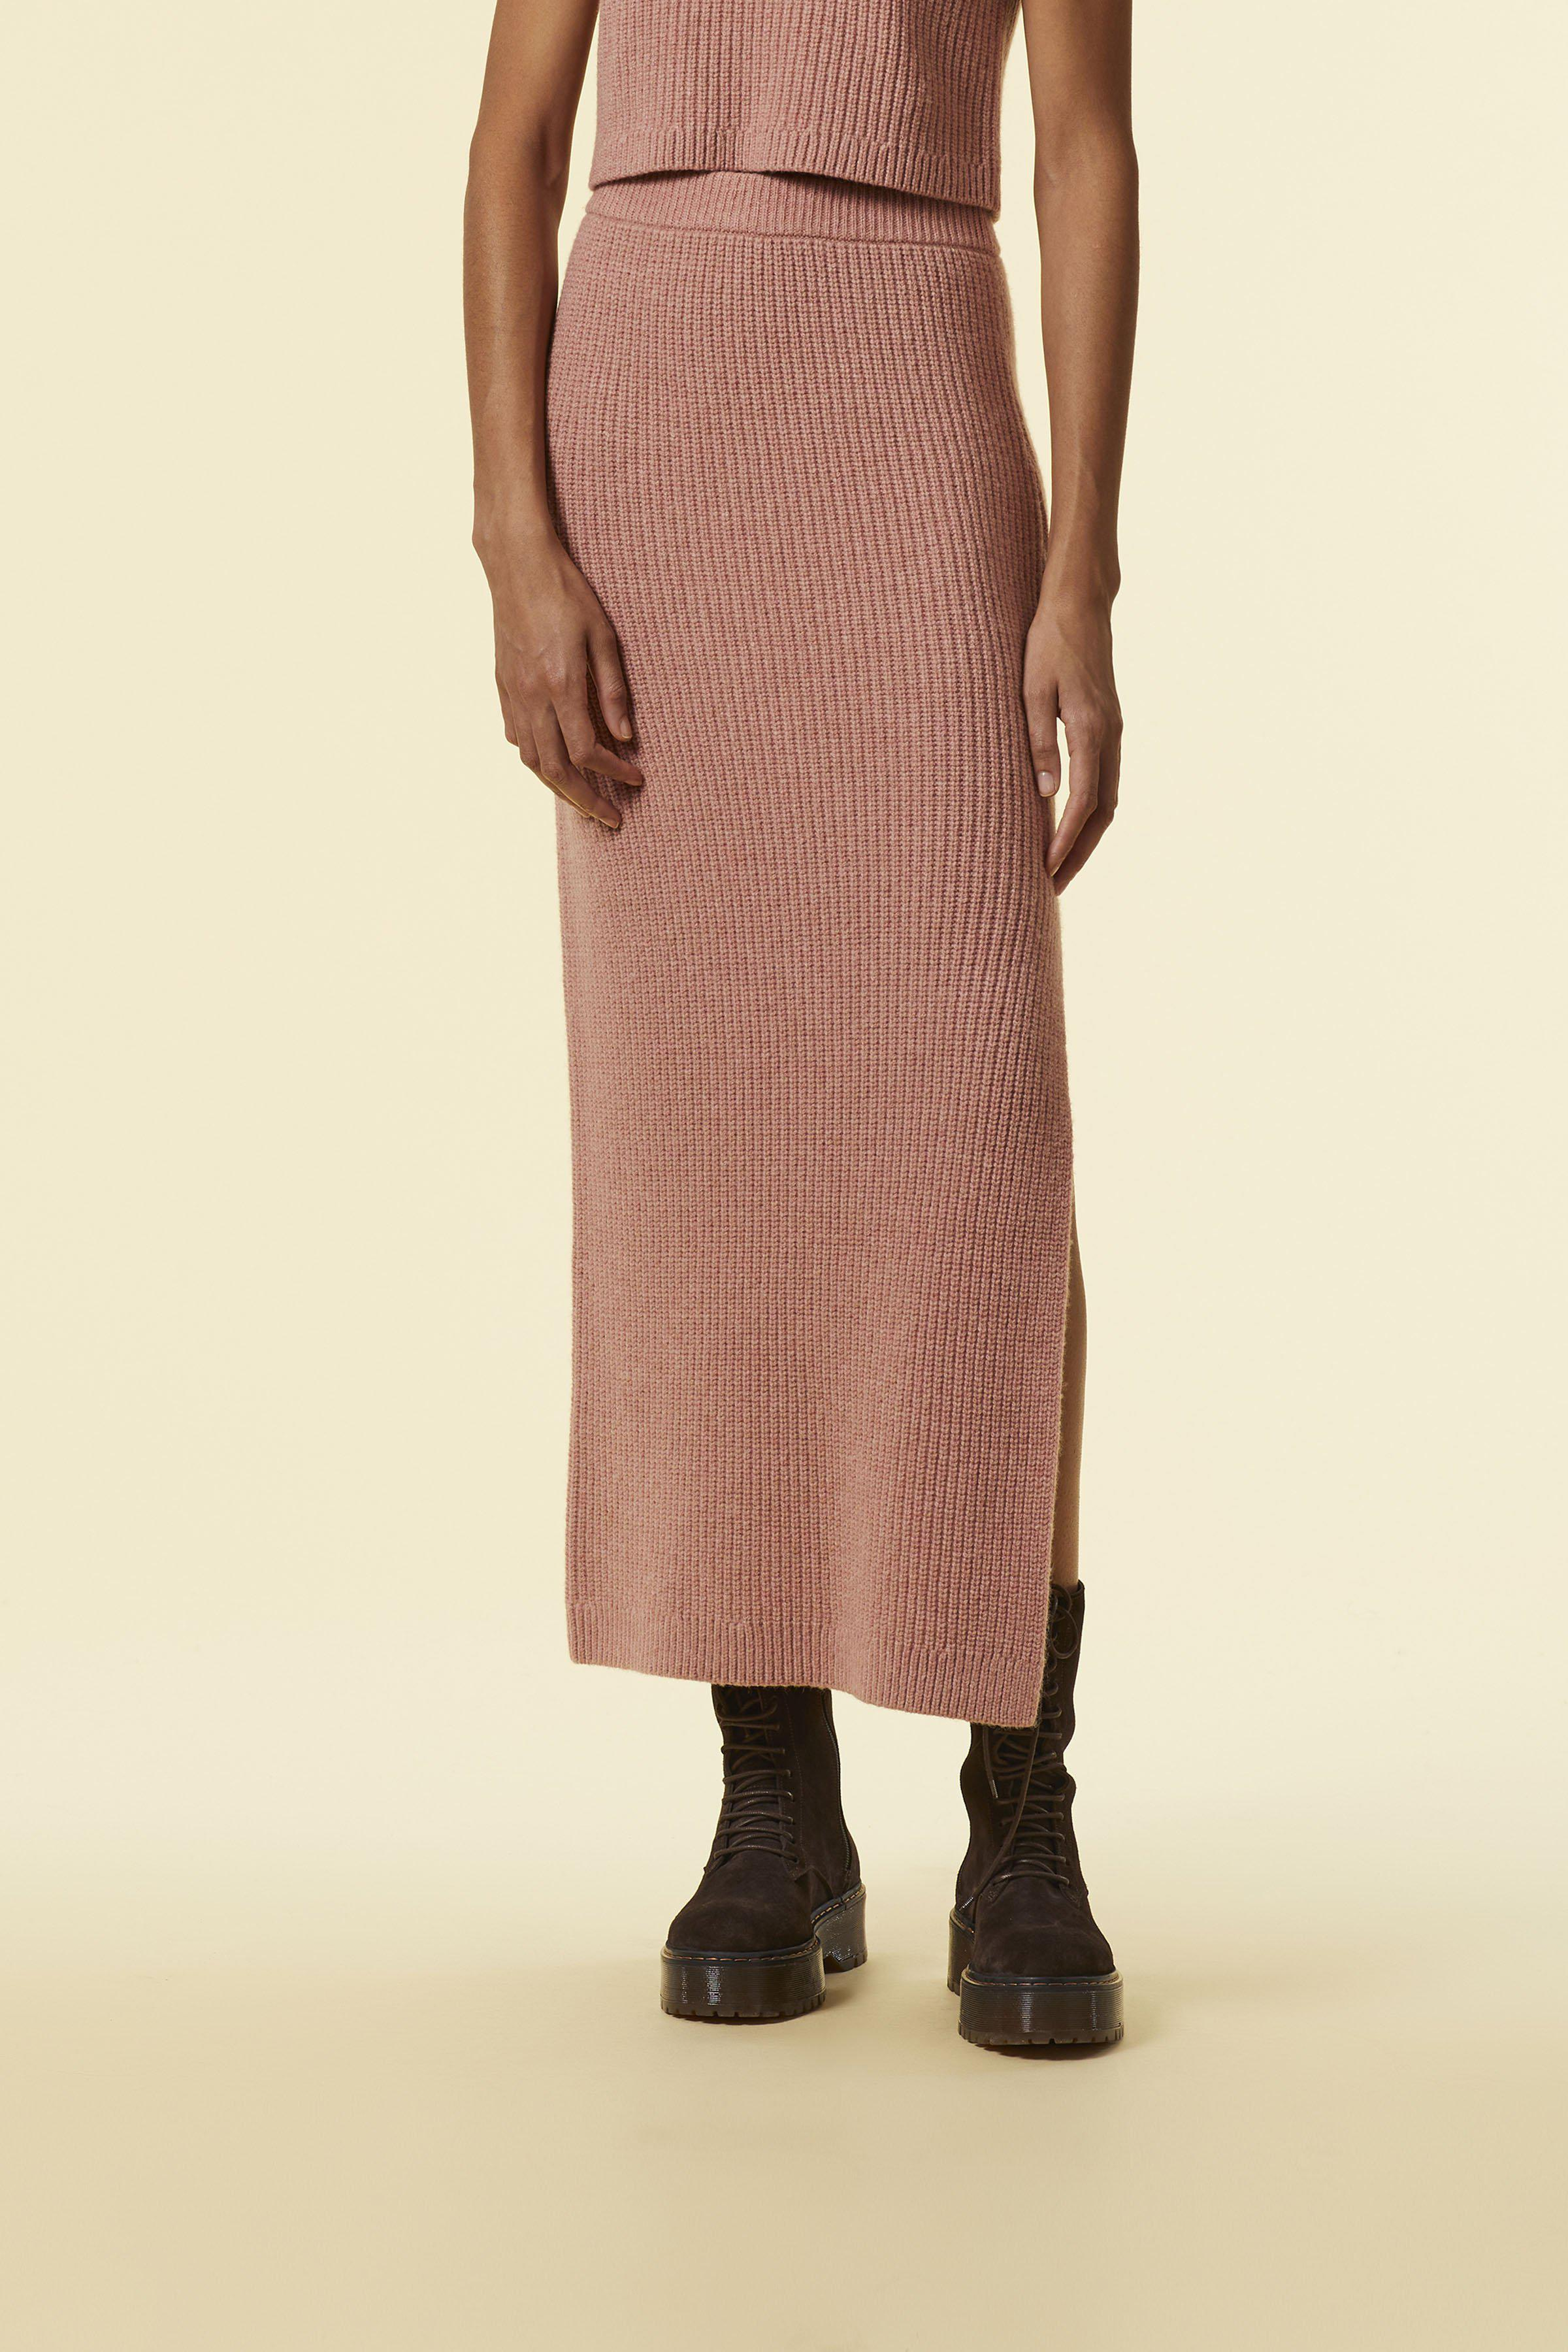 'Wetherby' Knit Skirt